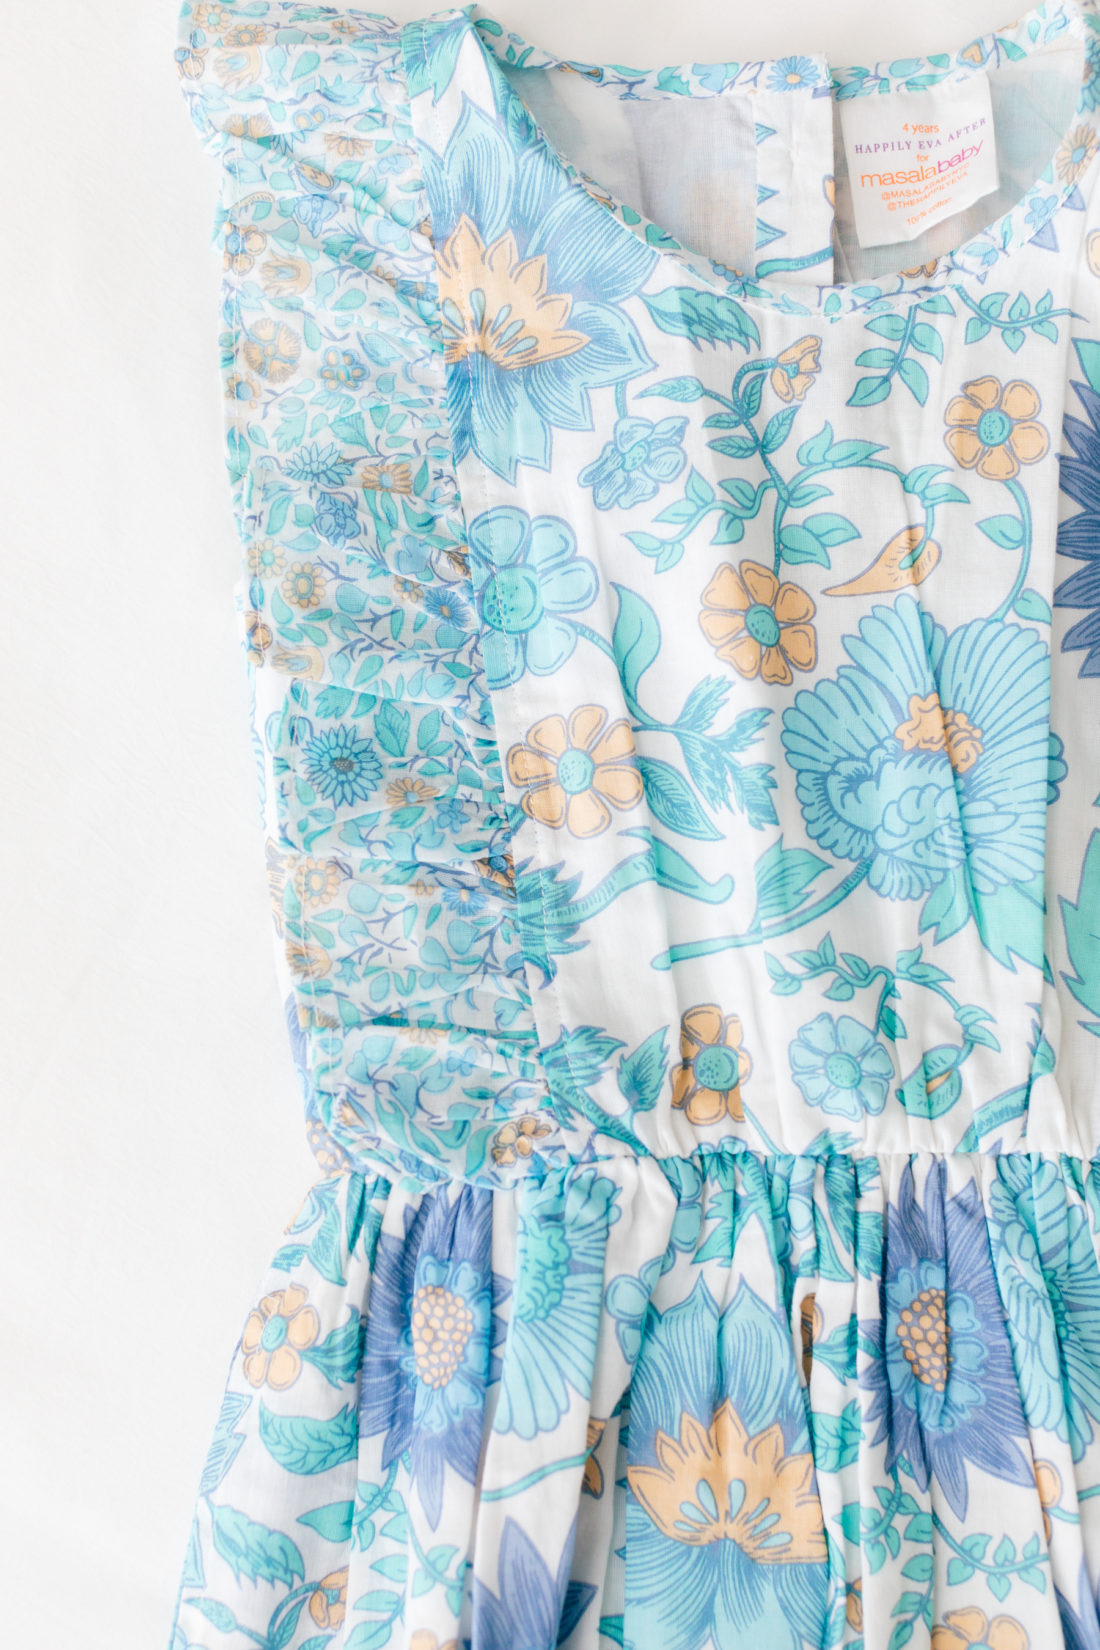 A close up of the detail on the fantasia dress from the Happily Eva After x Masala Baby capsule collection